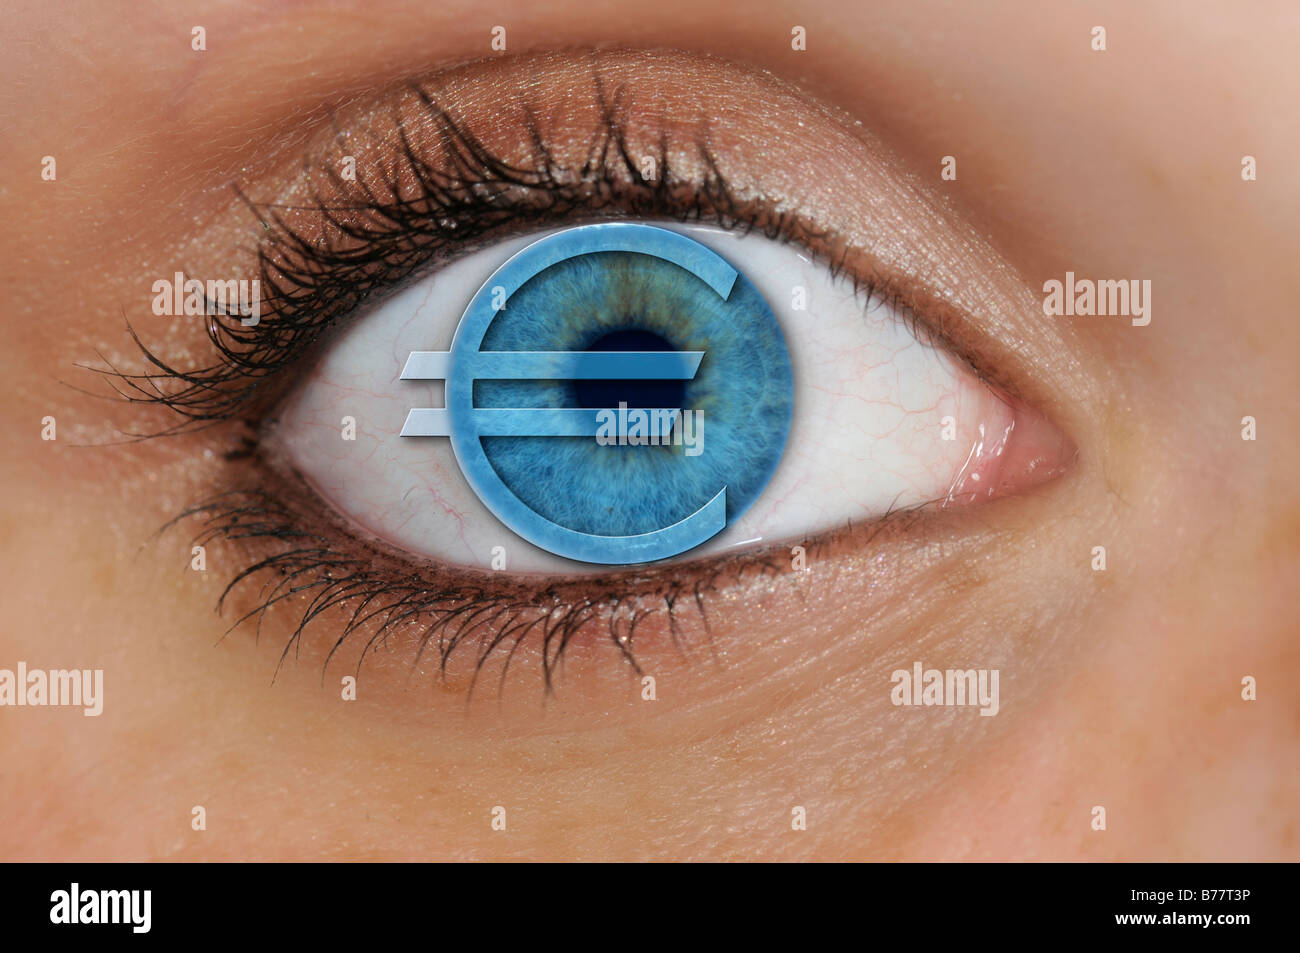 Eye with a euro symbol superimposed over a blue iris, detail, symbolic for avarice - Stock Image